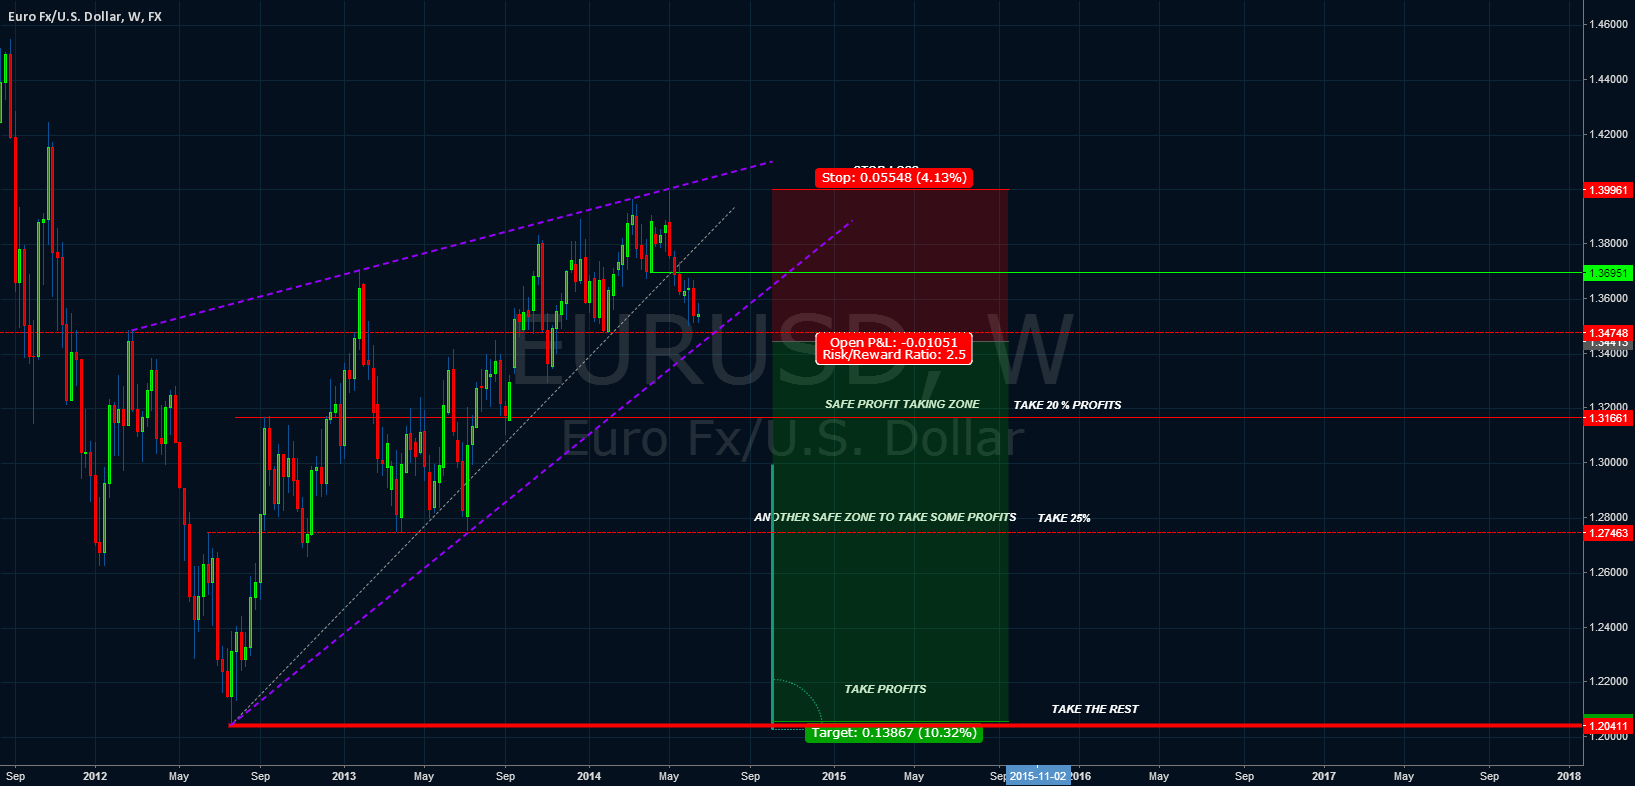 RISING WEDGE TRADE SCENARIO EUR/USD